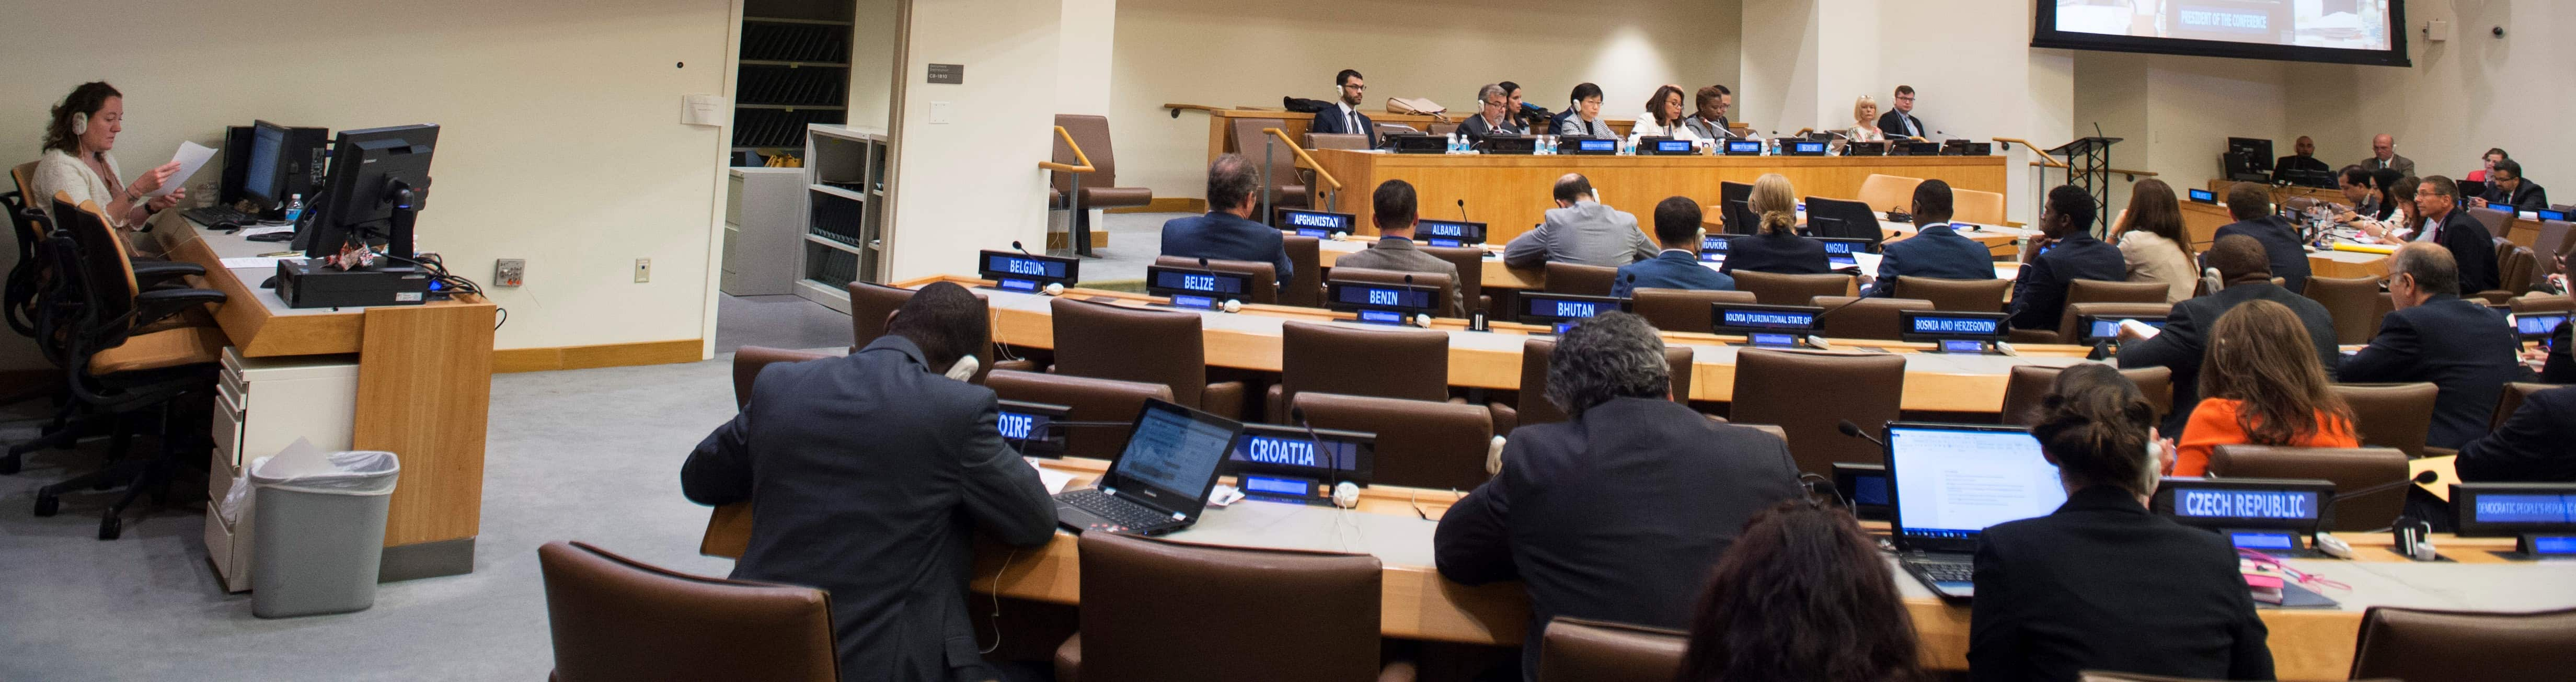 The 2nd Session of the UN Conference negotiating the treaty, July 2017 (Photo: UN)